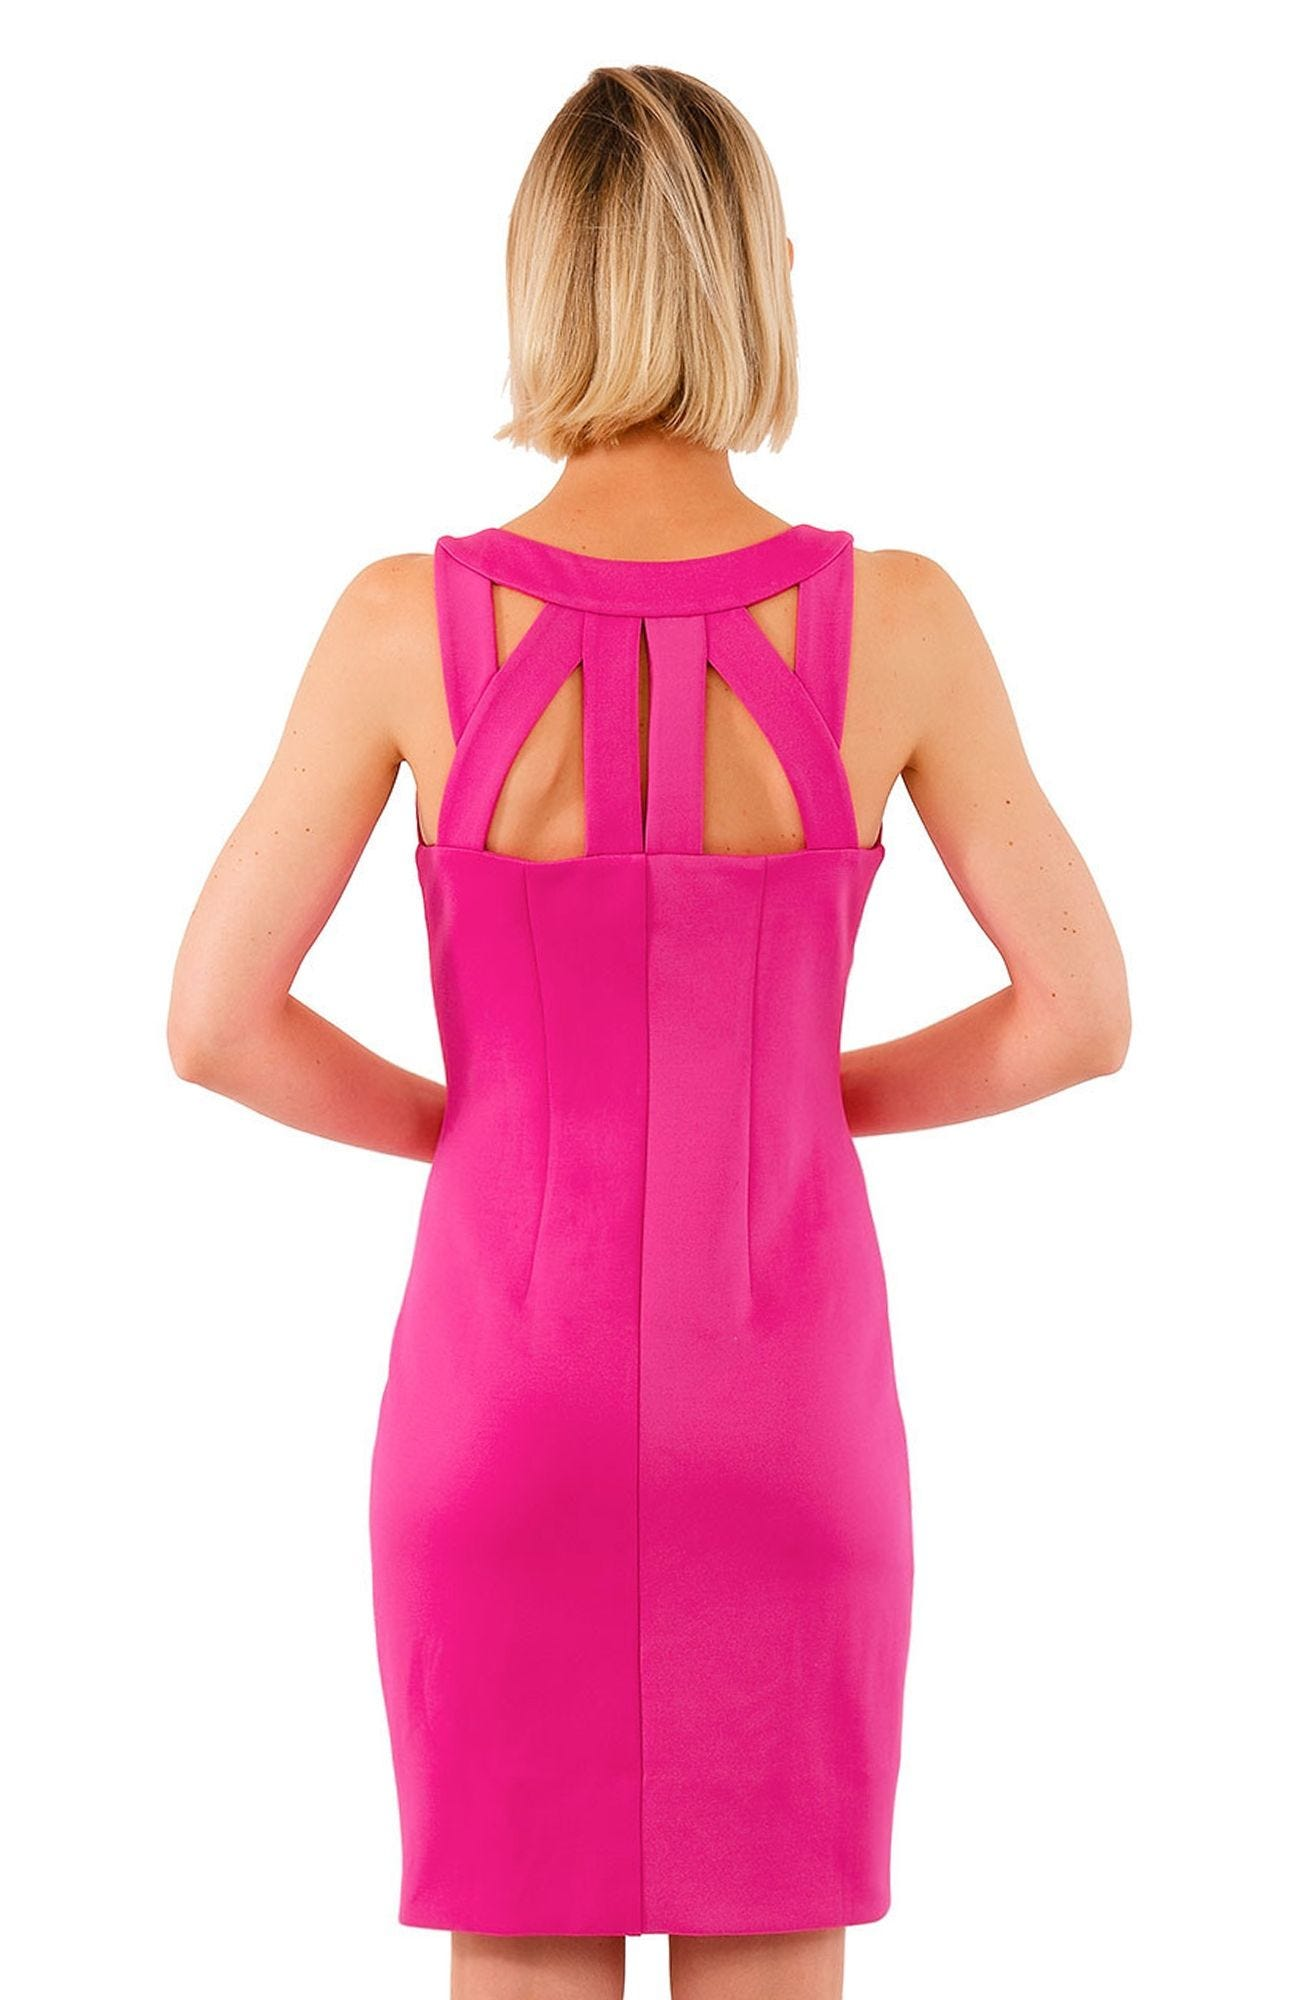 Gretchen Scott Isosceles Jersey Dress - Solid Pink